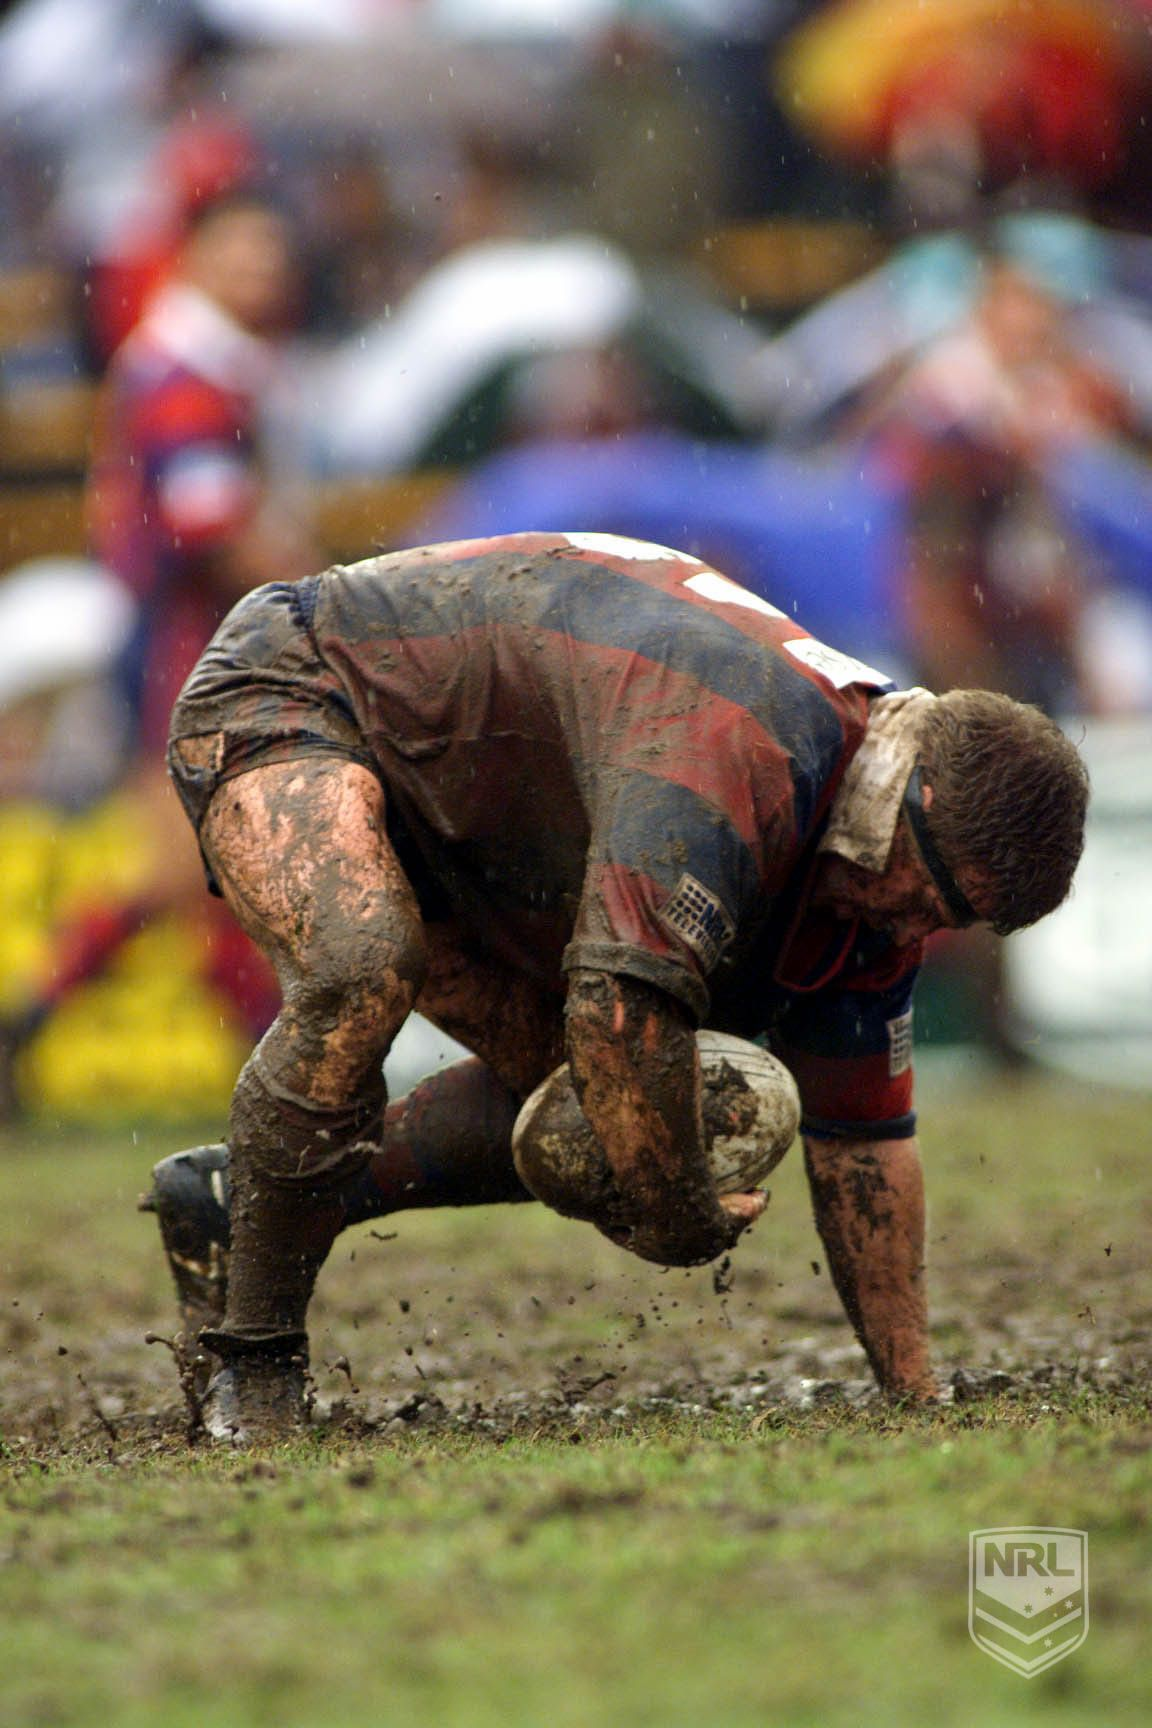 Newcastle Knights player in mud